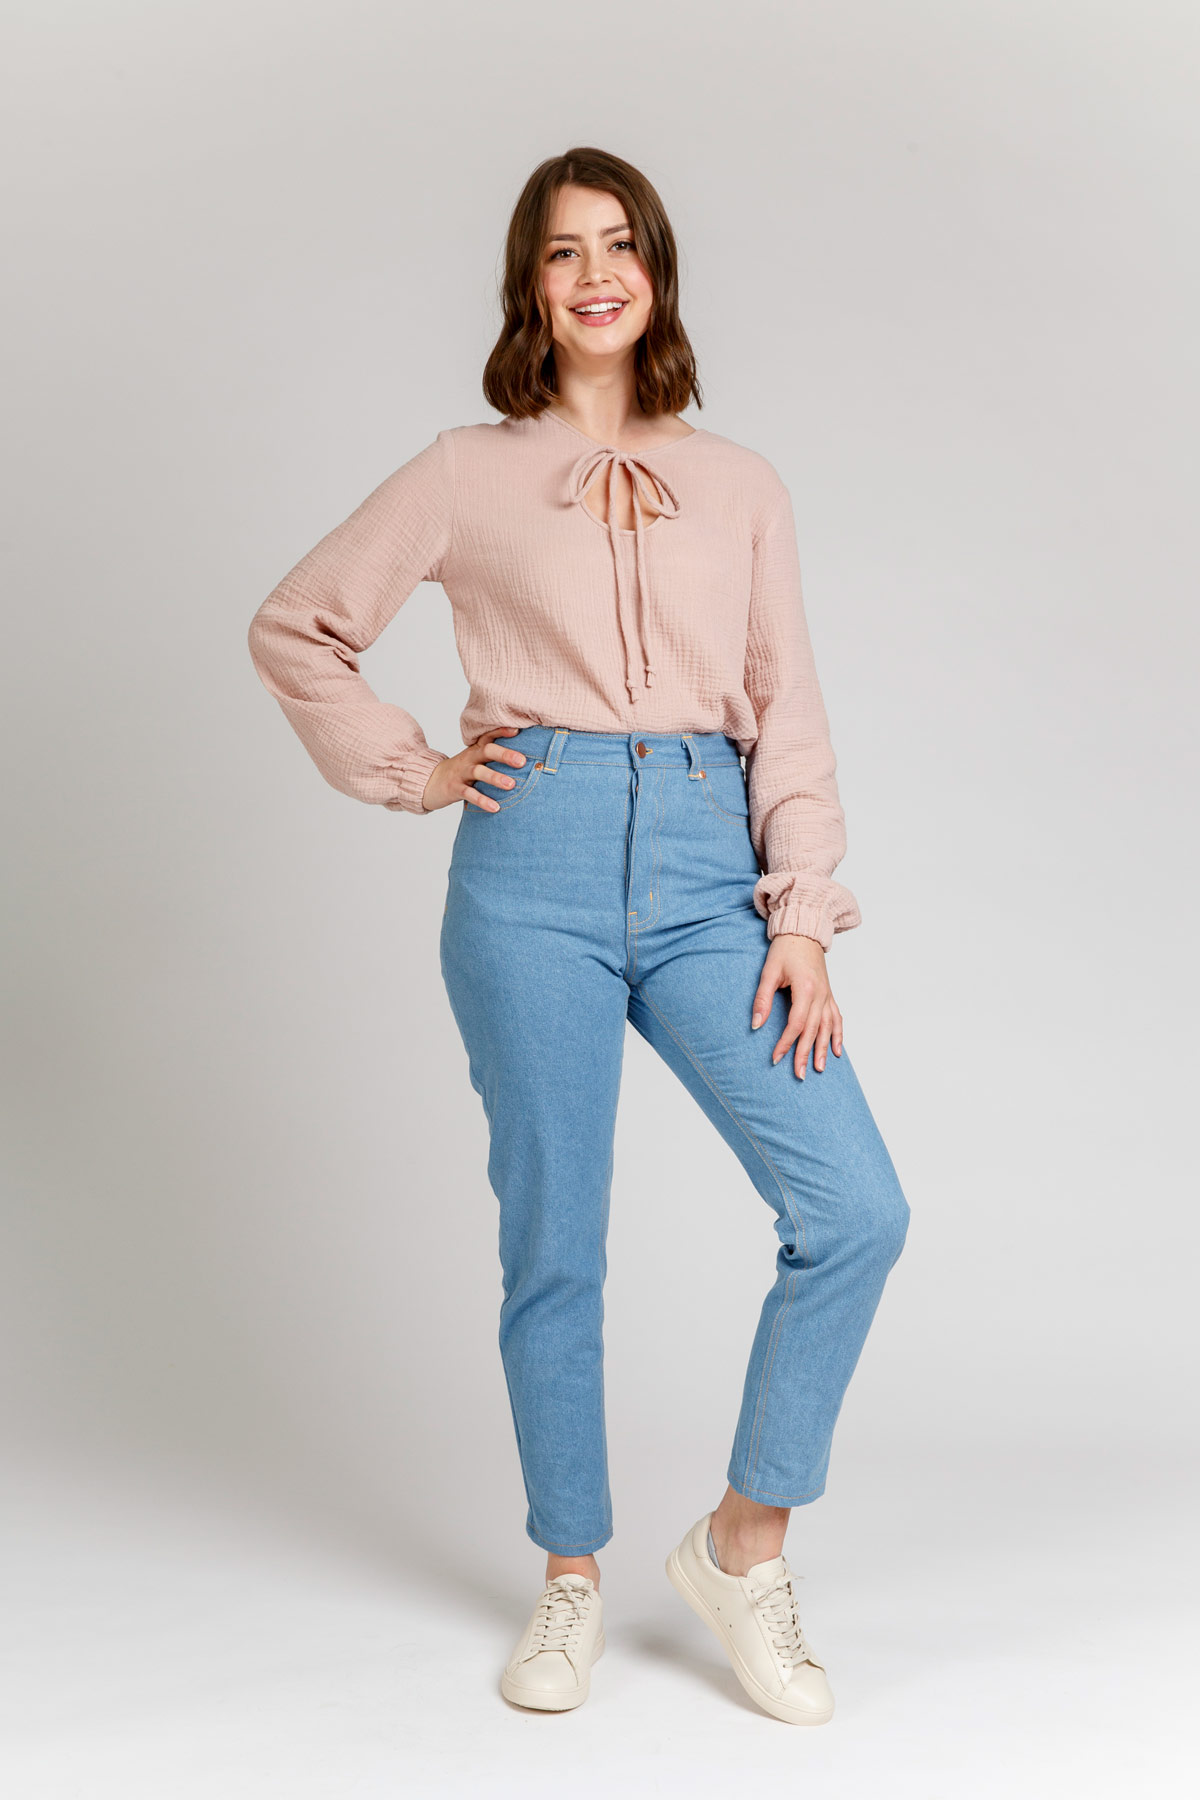 Megan Nielsen Sudley Curve long sleeve blouse View D includes long sleeves with elastic cuffs and lovely long ties. Keyhole can be worn at the back or front of this clever design.